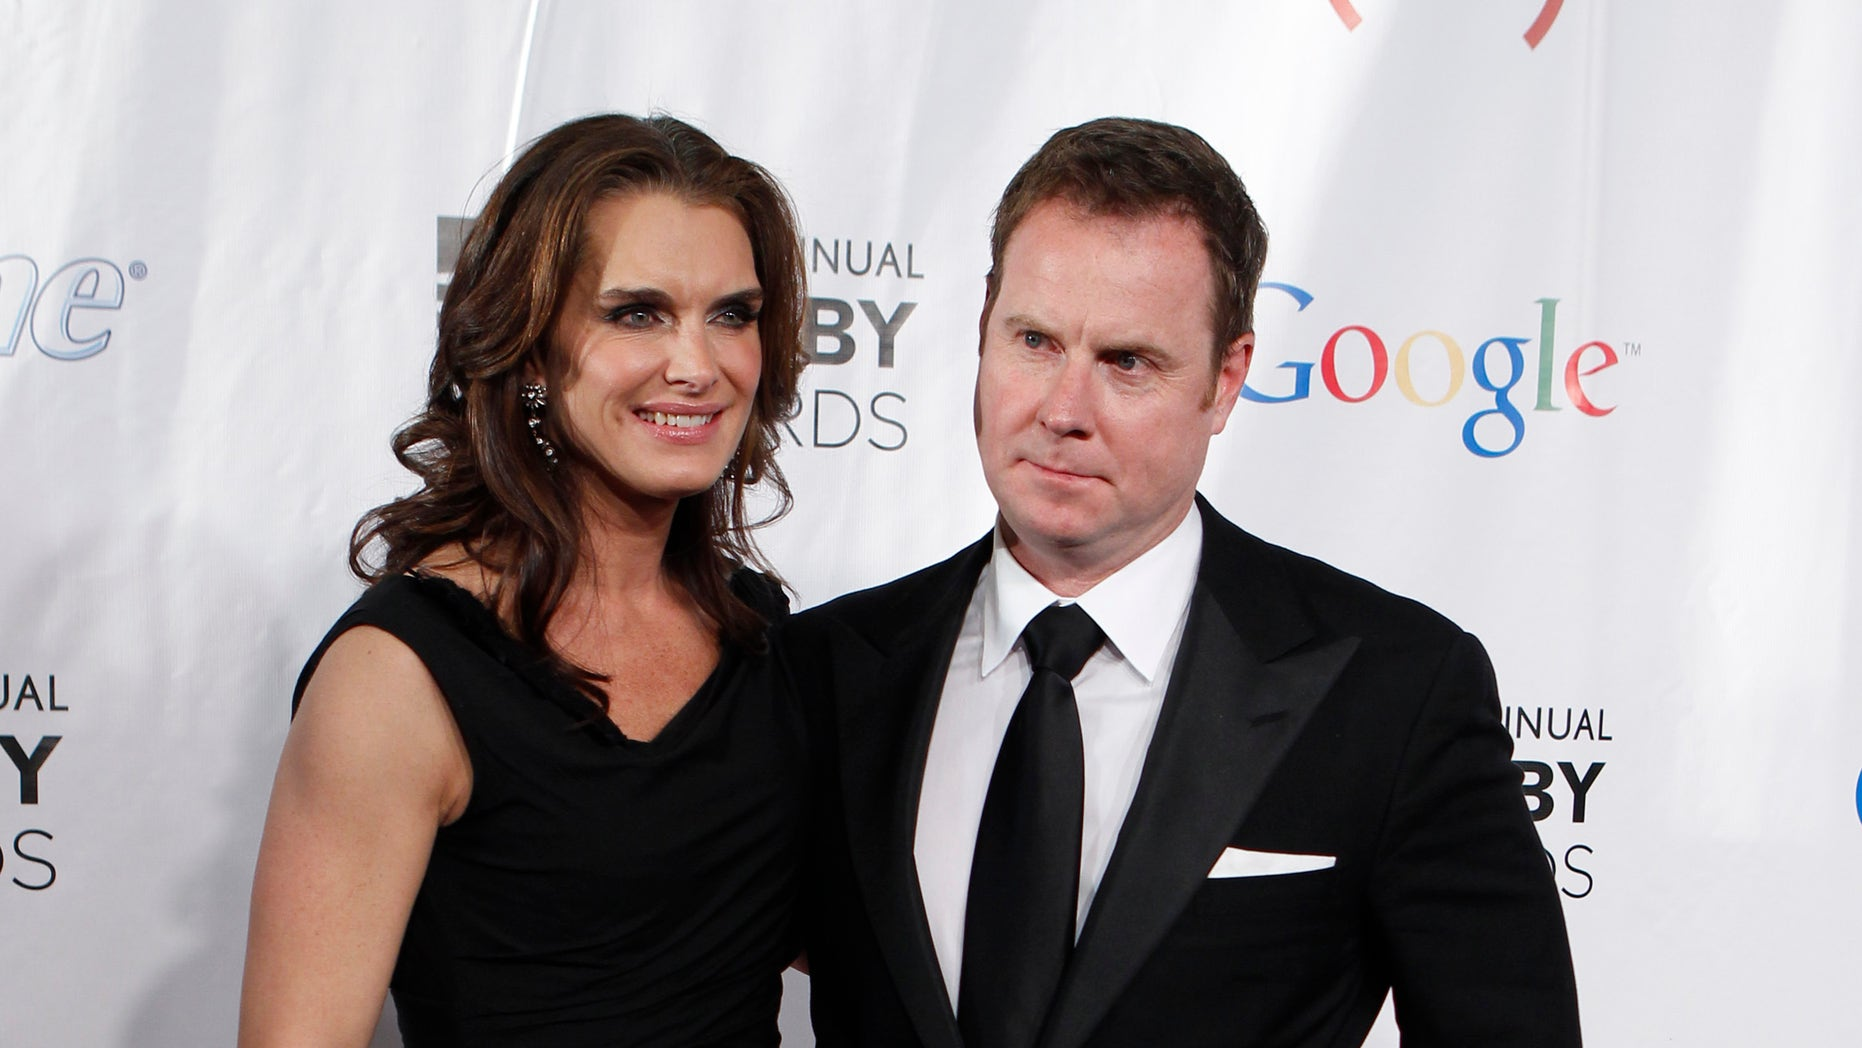 Actress Brooke Shields arrives with Chris Henchy at the 15th annual Webby Awards in New York June 13, 2011.  REUTERS/Lucas Jackson  (UNITED STATES - Tags: ENTERTAINMENT) - RTR2NN4D